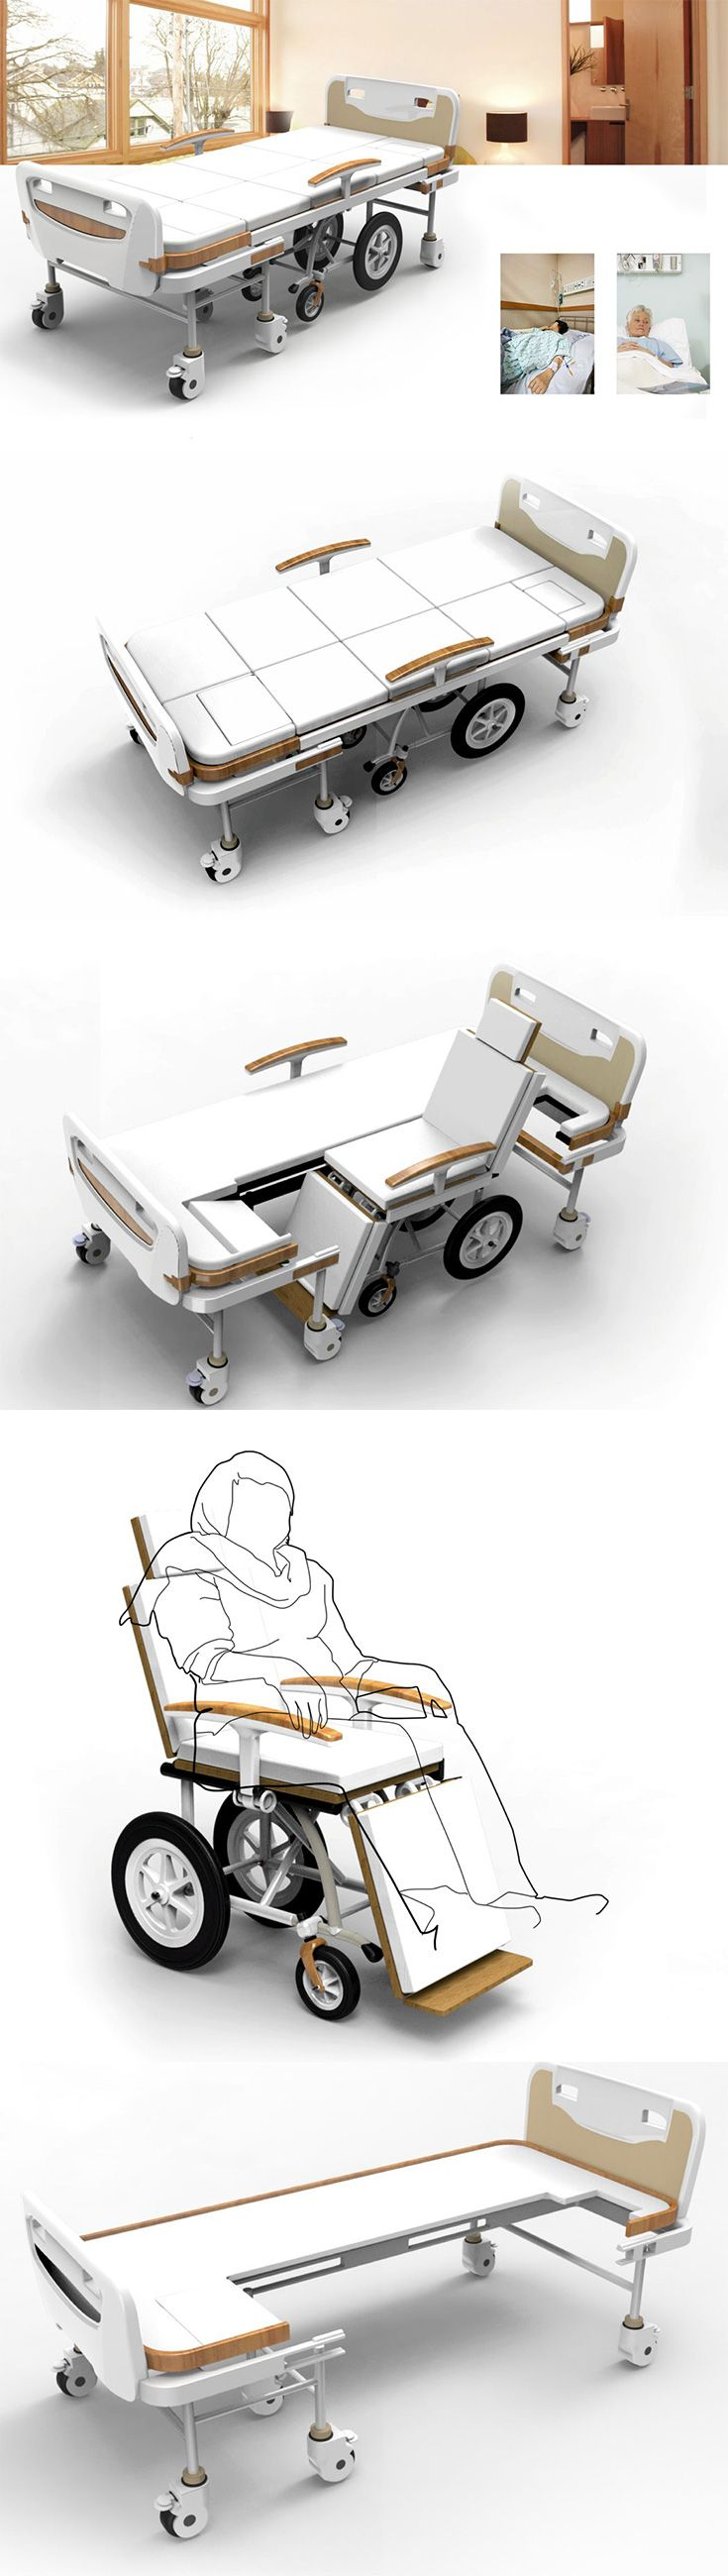 The LOHAS bed can be folded and transformed into a wheelchair in a matter of minutes without disturbing the patient with the help of only one nurse instead of 3.>>> See it. Believe it. Do it. Watch thousands of spinal cord injury videos at SPINALpedia.com